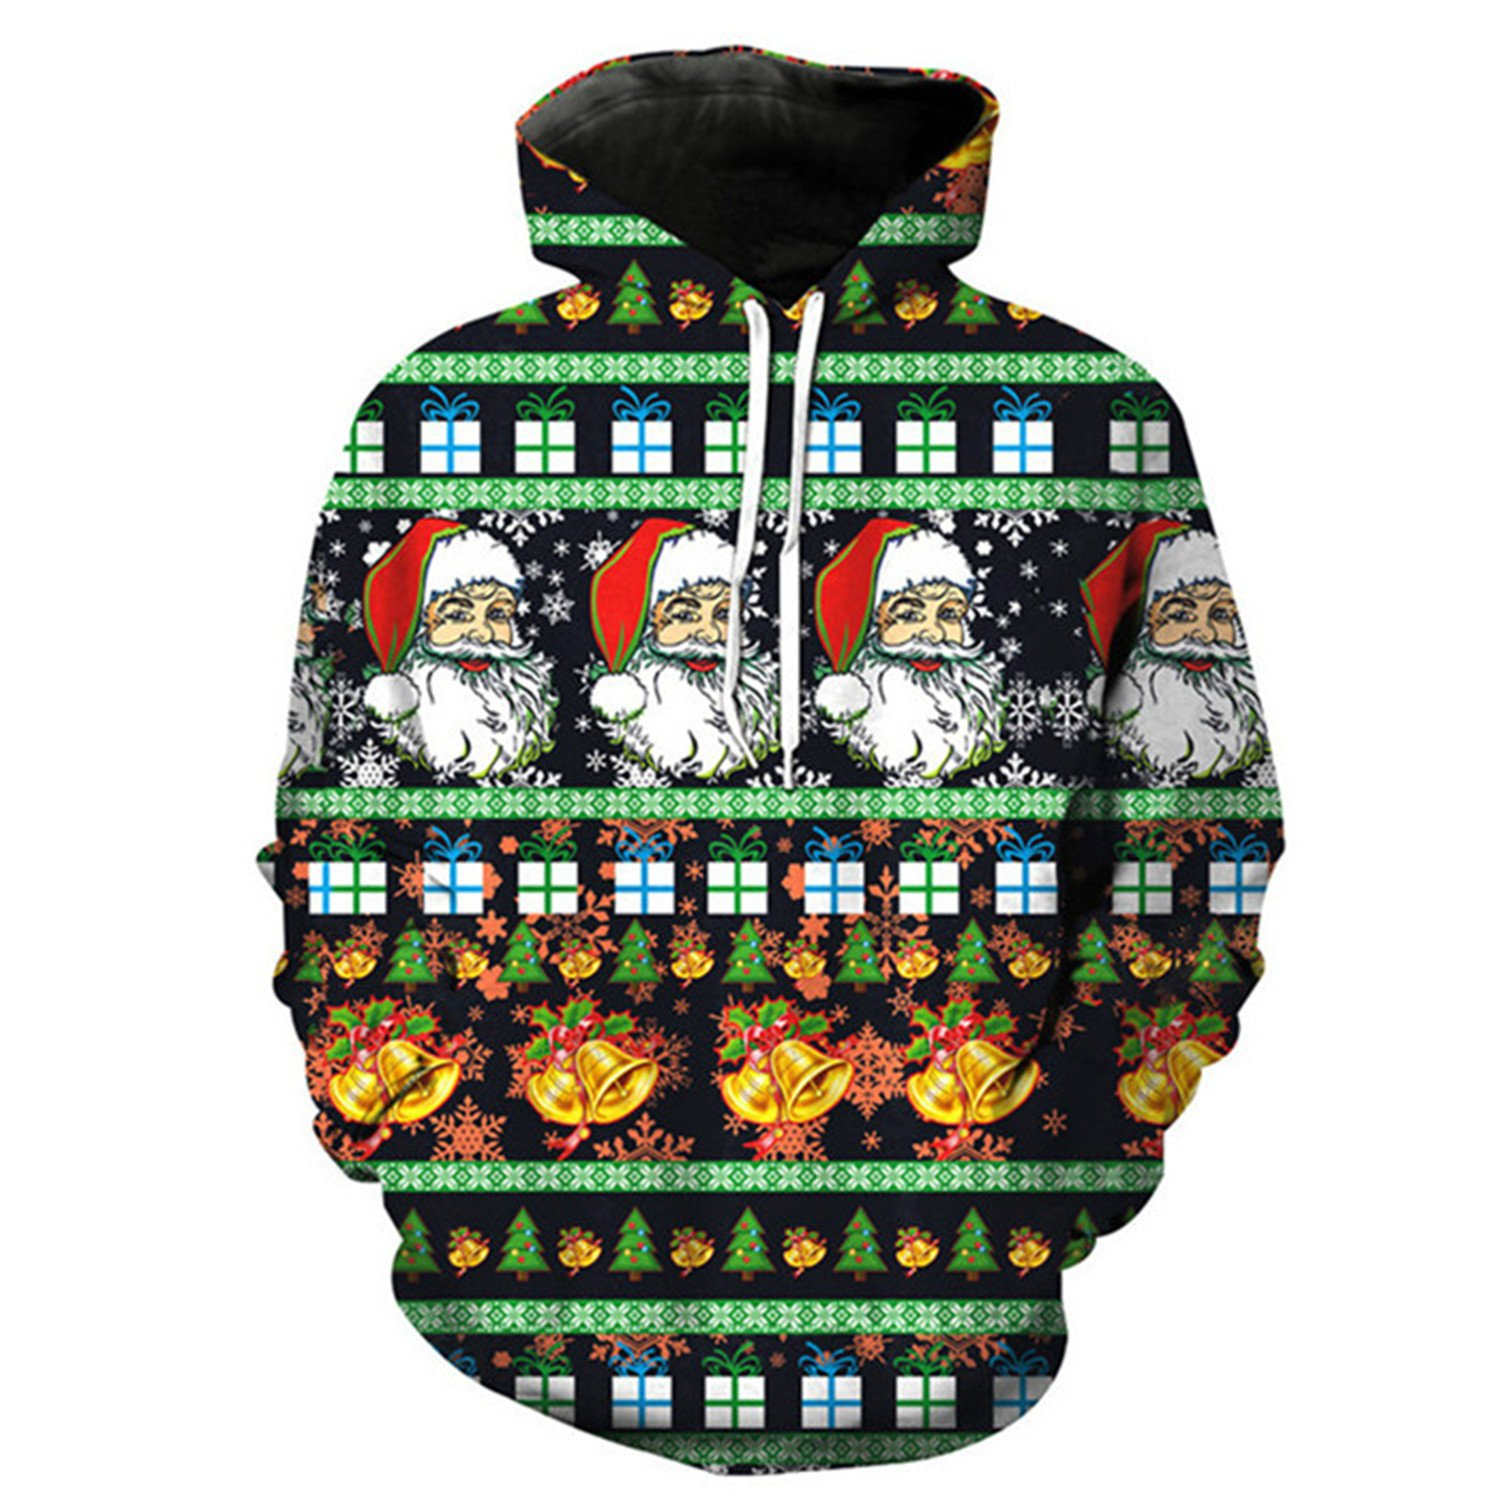 Matterin Christiao Christmas Print Hooded Sweatshirt Men Women New Autumn 3D Mens Hoodies Harajuku Hip Hop Pullover at Amazon Mens Clothing store: